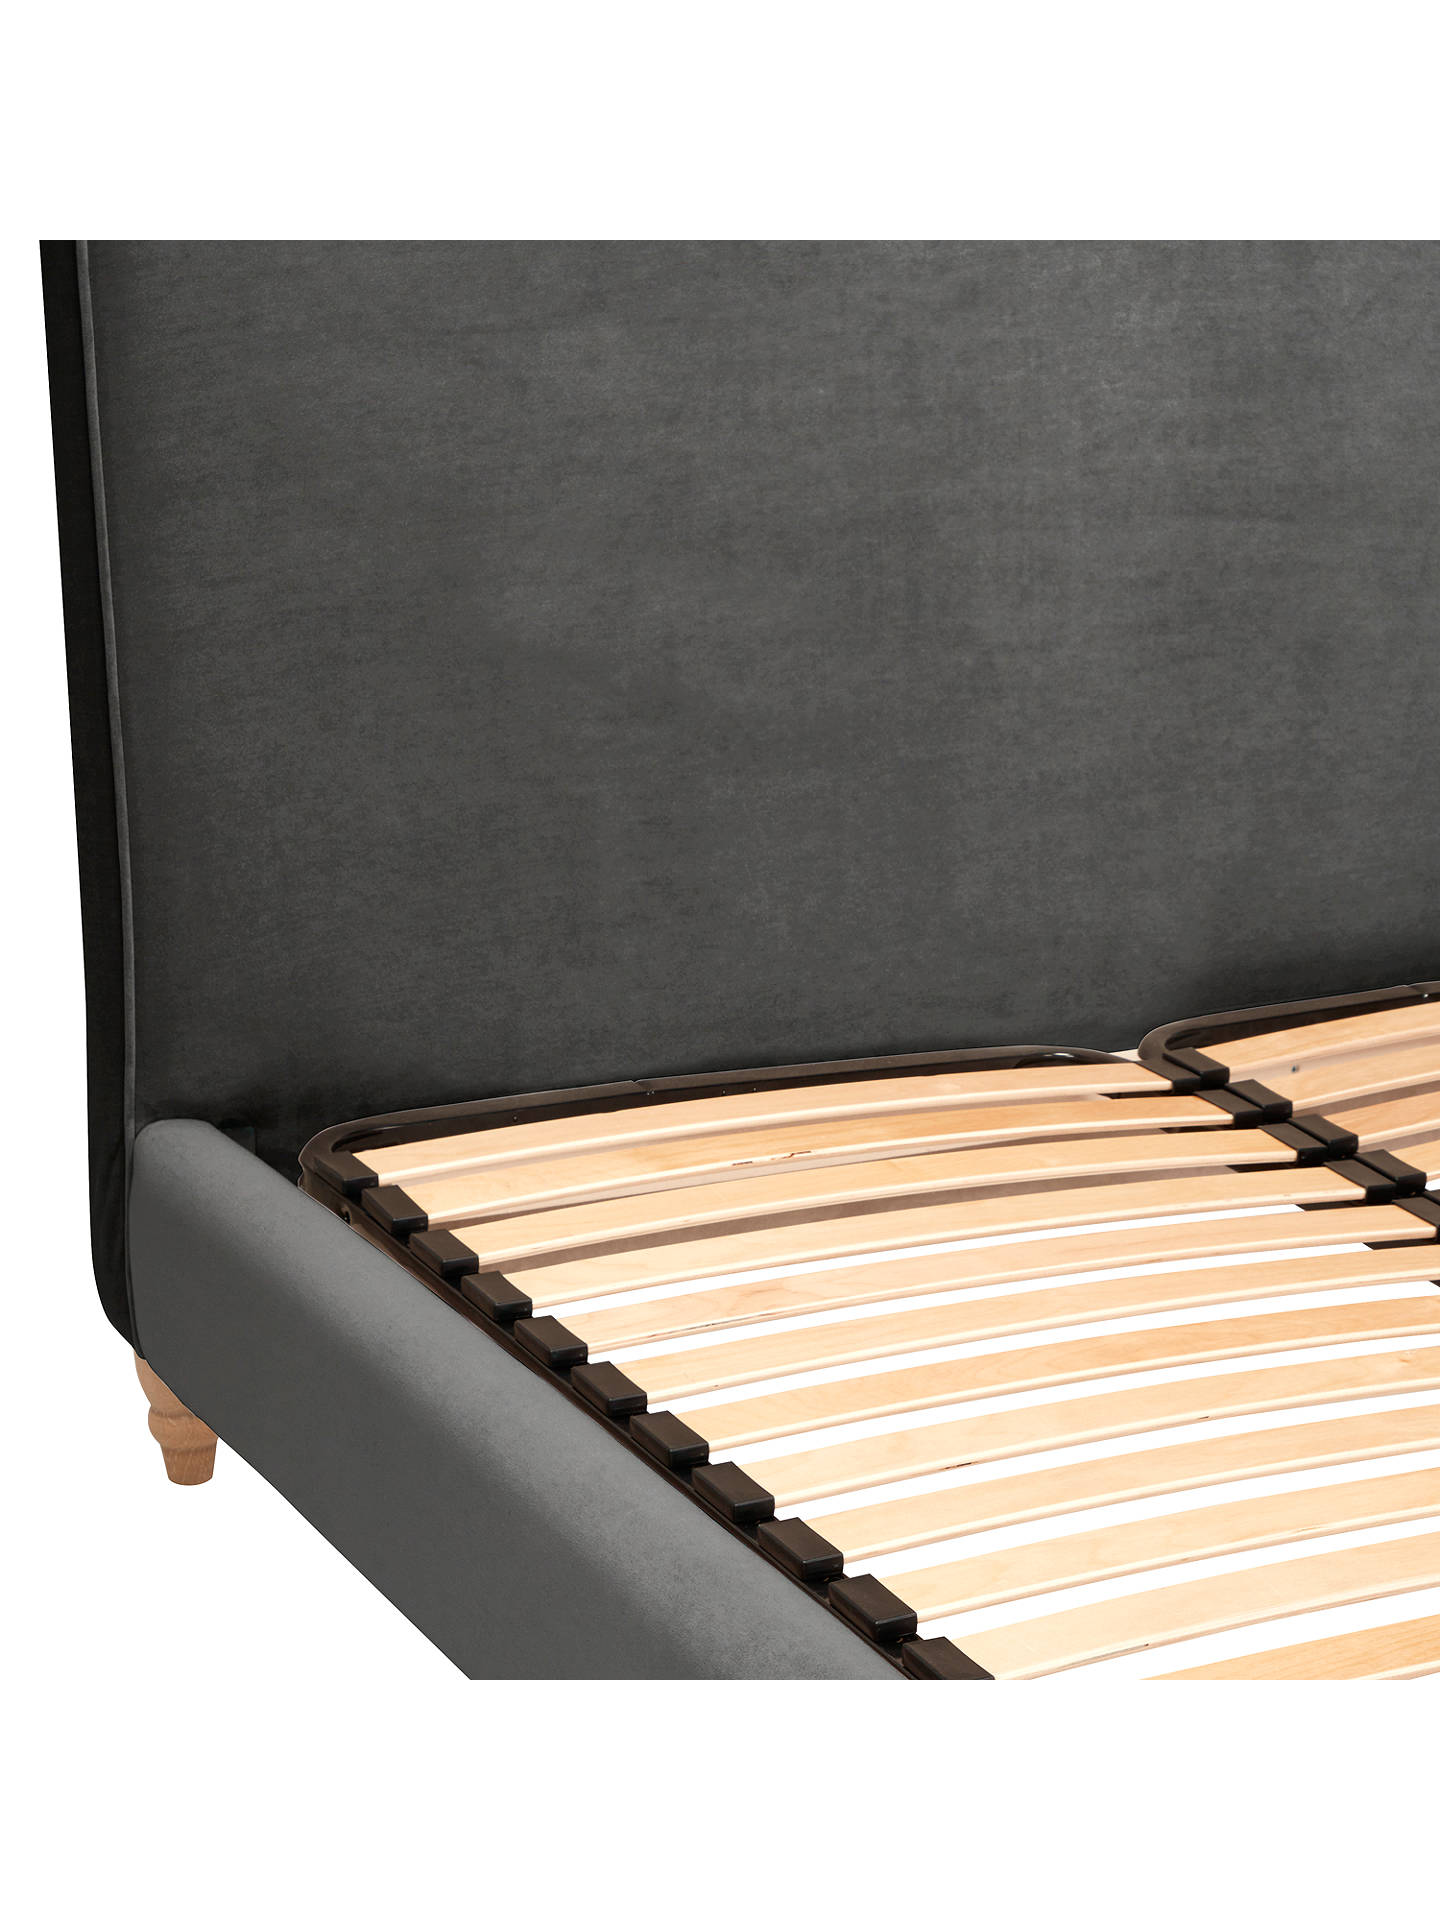 Buy Fudge Bed Frame by Loaf at John Lewis in Clever Velvet, Super King Size, Steel Online at johnlewis.com